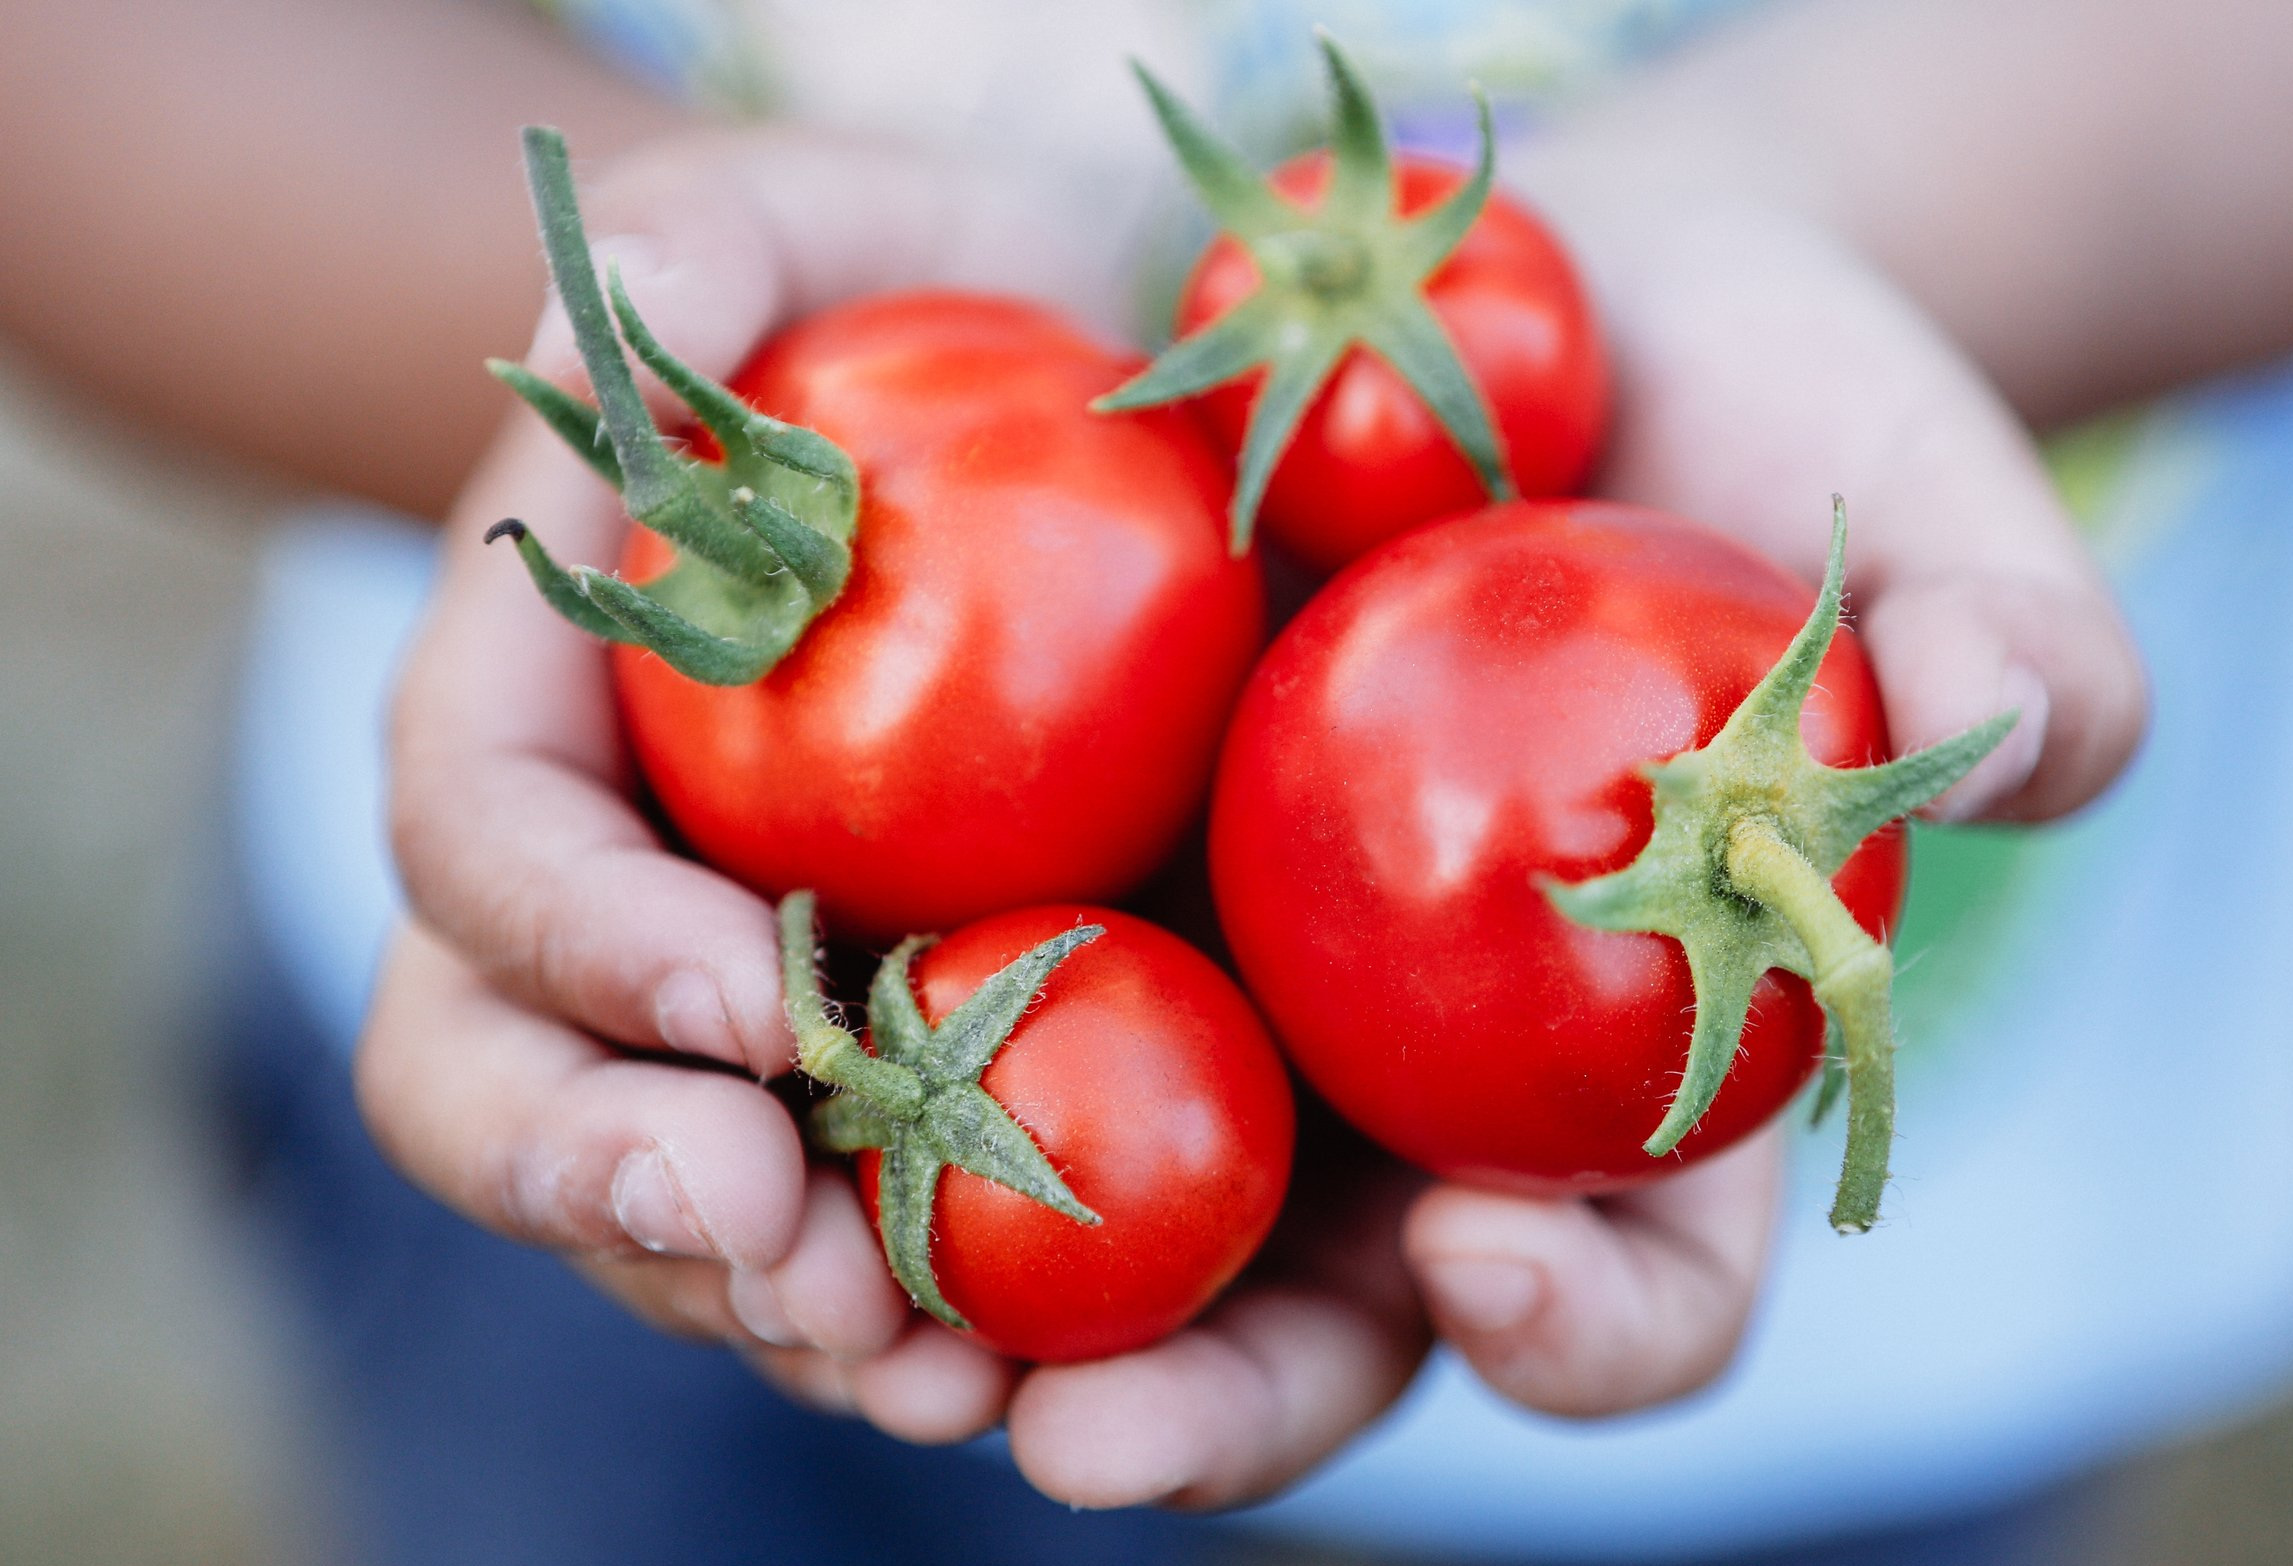 a-handful-of-ripe-sweet-organic-tomatoes-freshly-picked-from-a-home-garden_t20_JYKLKP.jpg